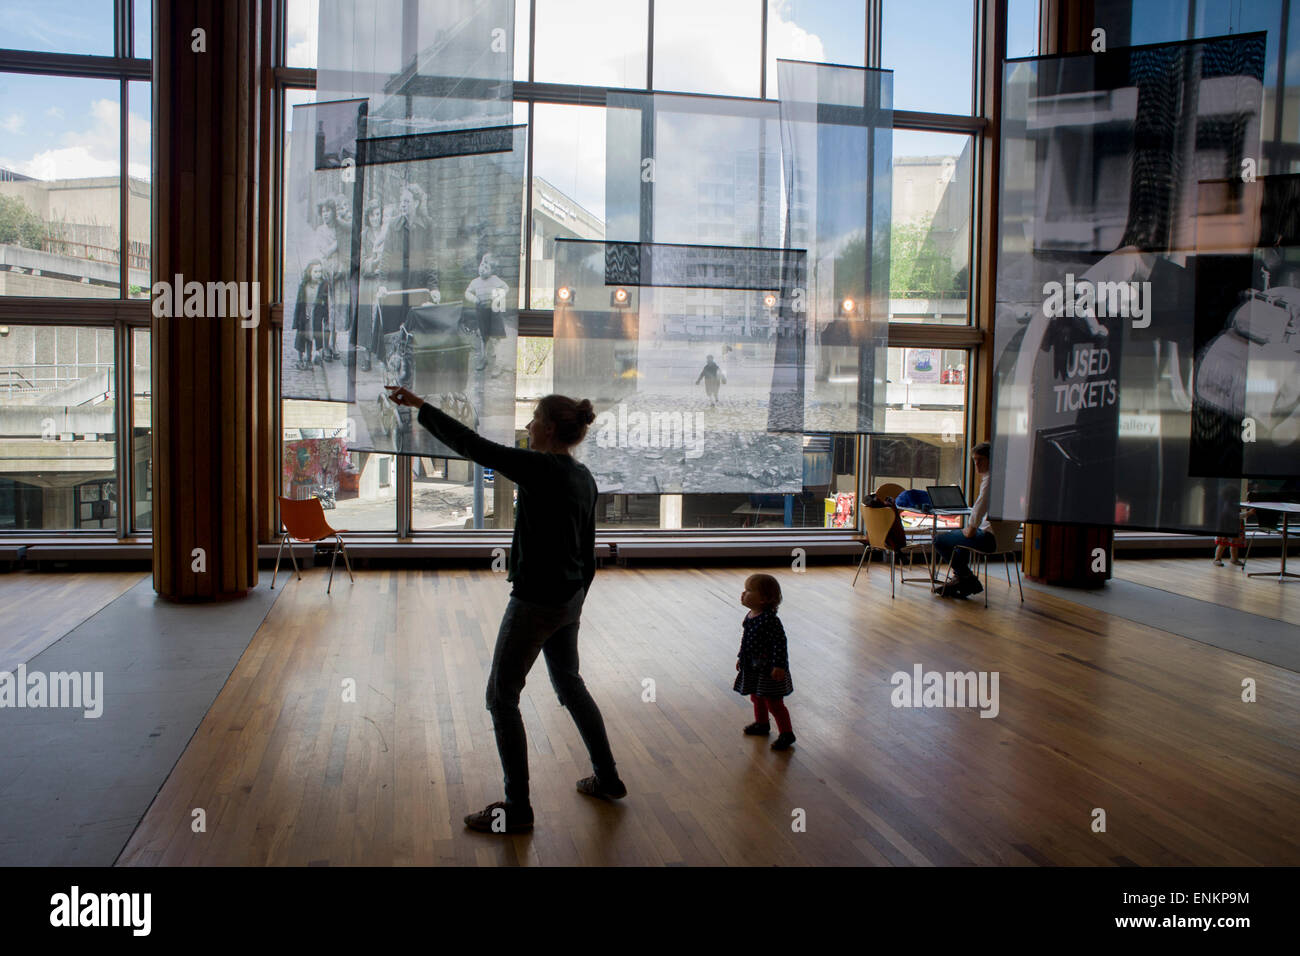 A young child beneath  large screen images showing childhood of a bygone era in Britain's history, on display - Stock Image